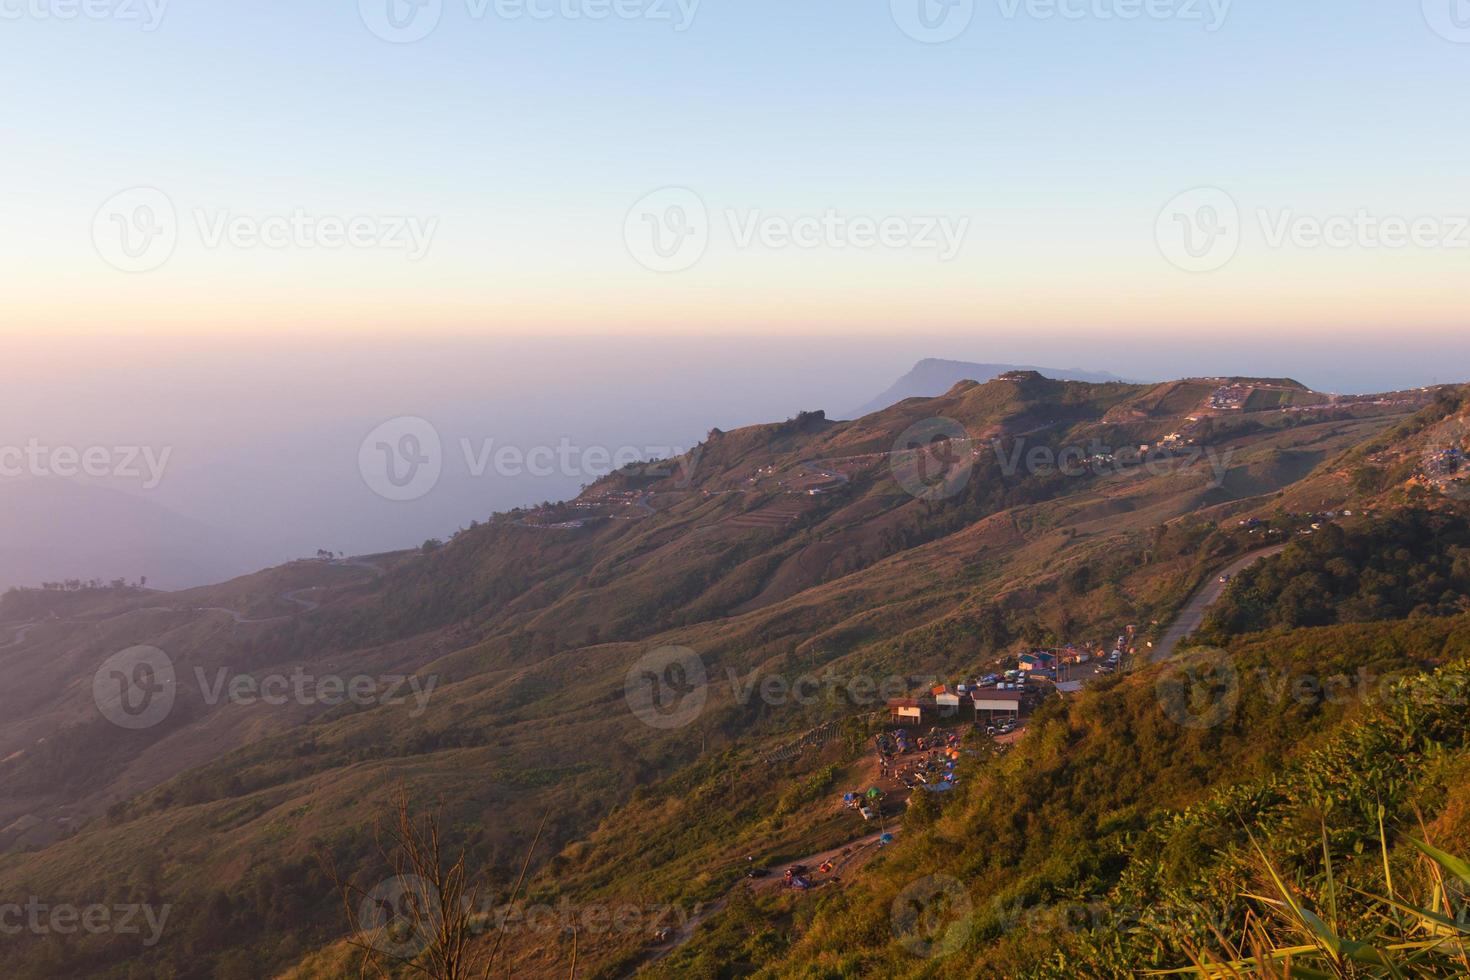 Sunrise scene and the winding road up the mountain photo